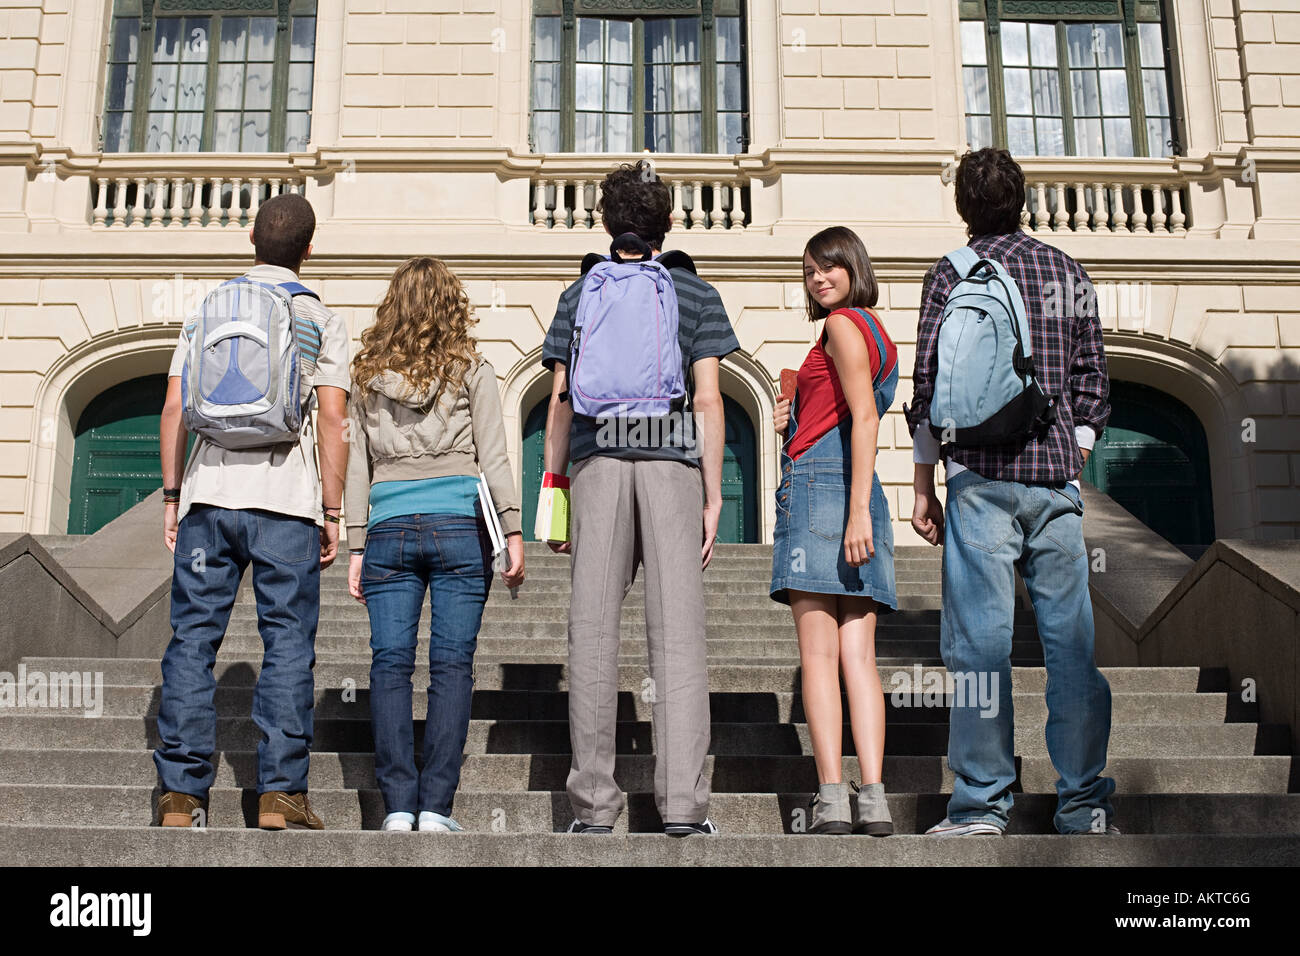 High school students standing on stairs Stock Photo